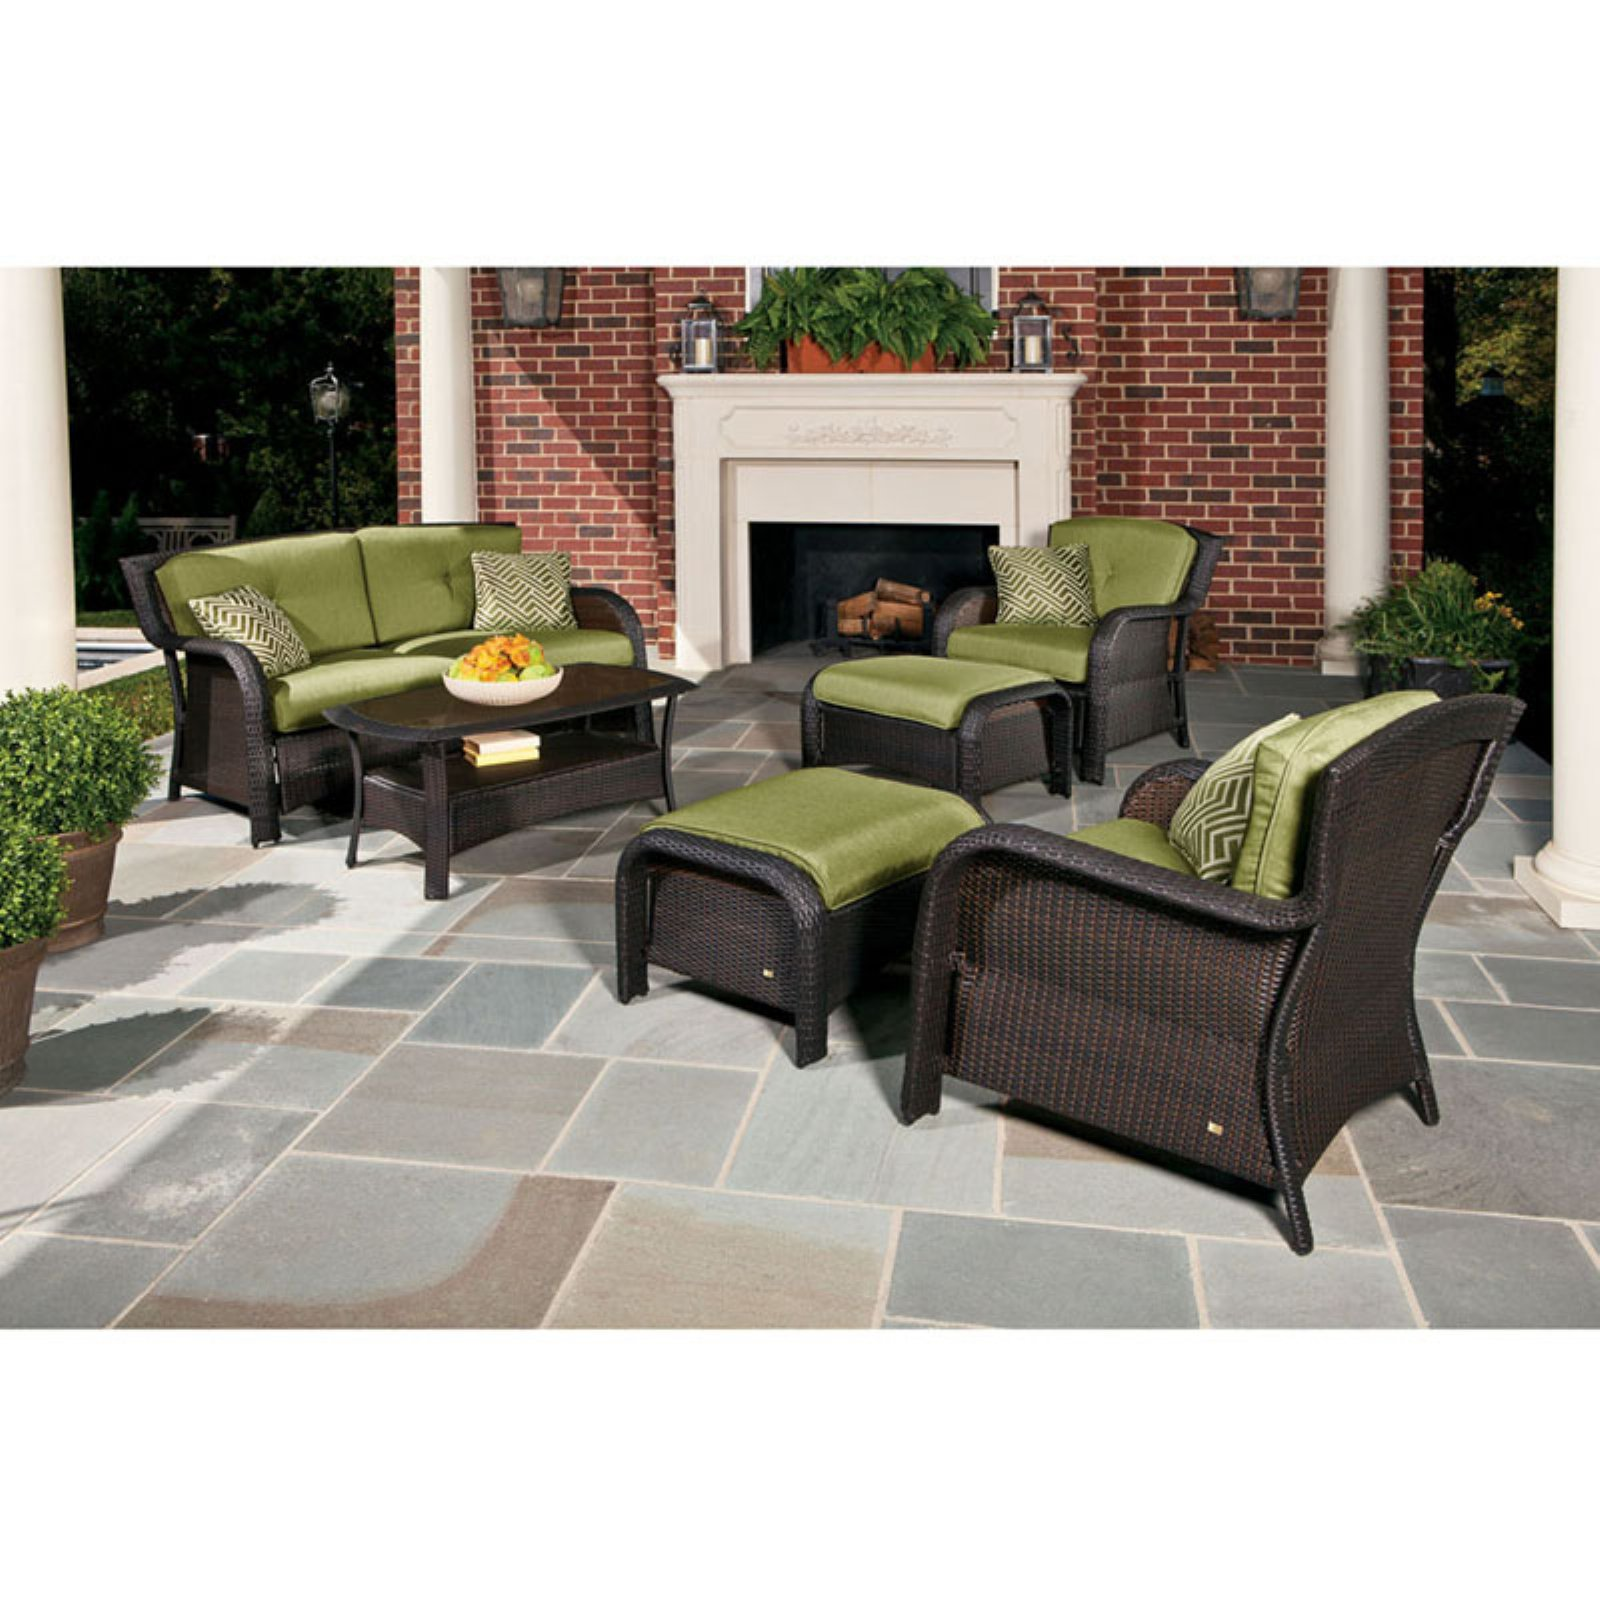 Hanover Strathmere 6-Piece Patio Seating Set by Hanover